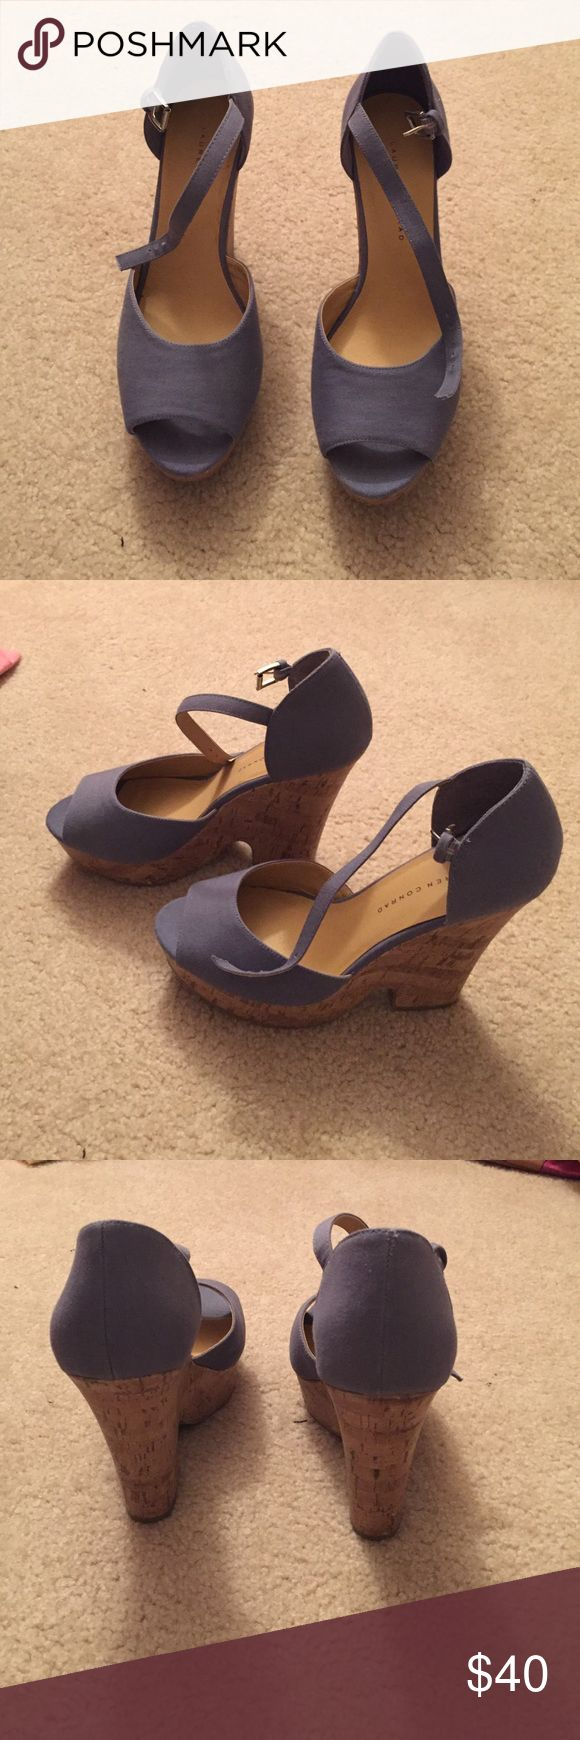 Lauren Conrads purple wedges Worn once. In practically new condition. LC Lauren Conrad Shoes Wedges